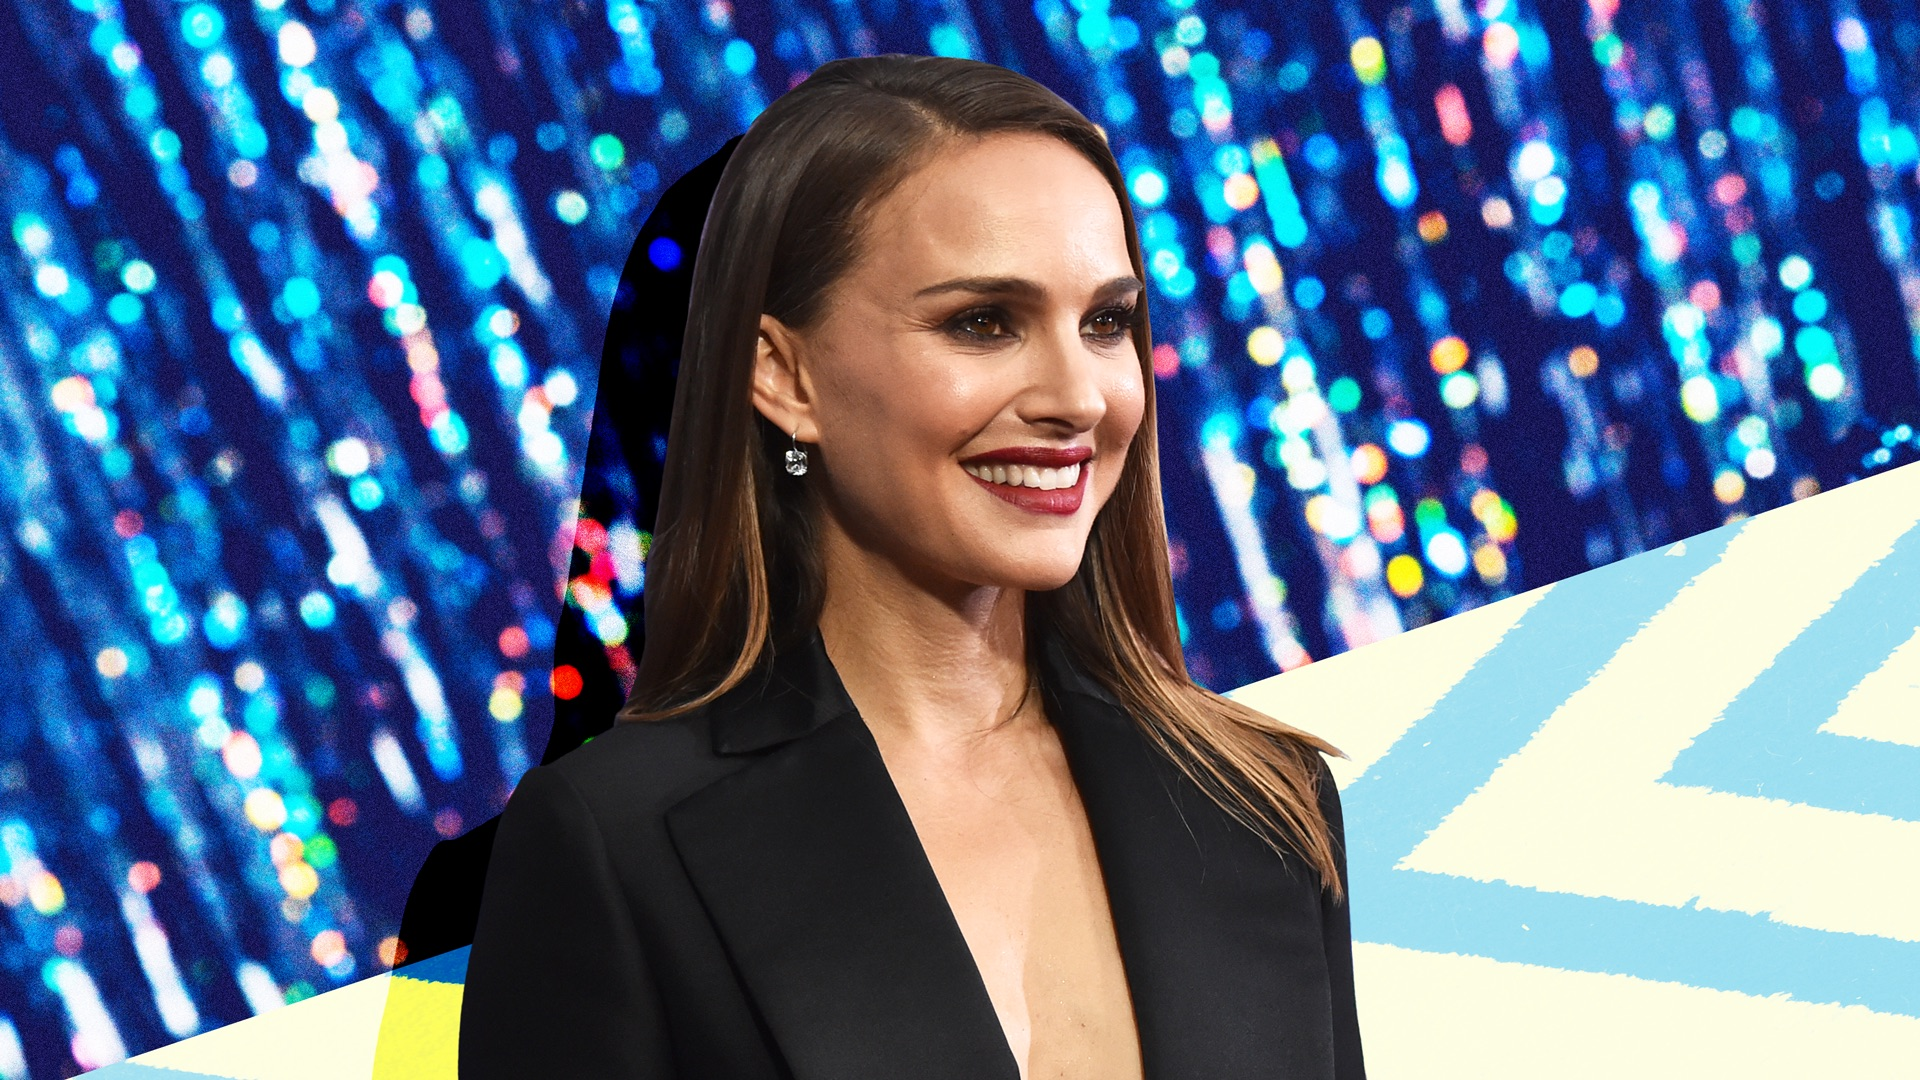 Natalie Portman on Vox Lux Growing Up in the Public Eye 1920x1080